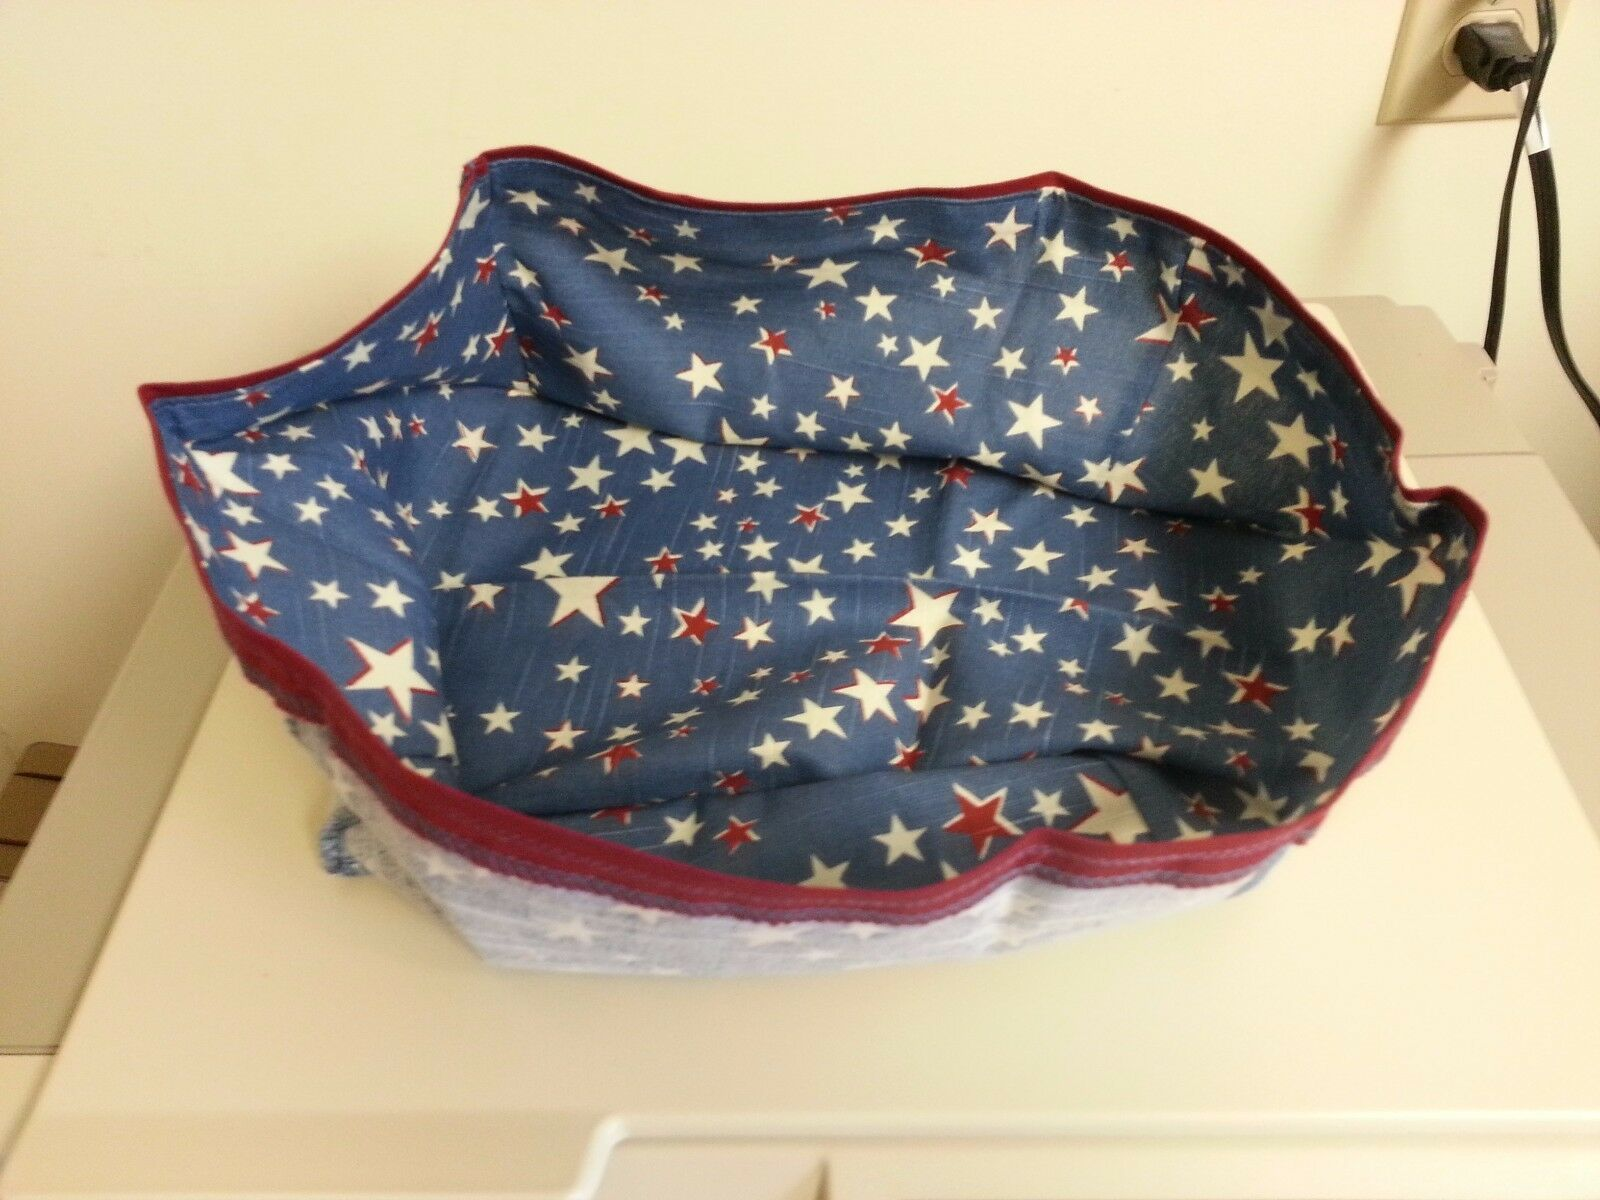 Primary image for Longaberger Cake Basket Small Picnic American Starburst Fabric DI Liner Only